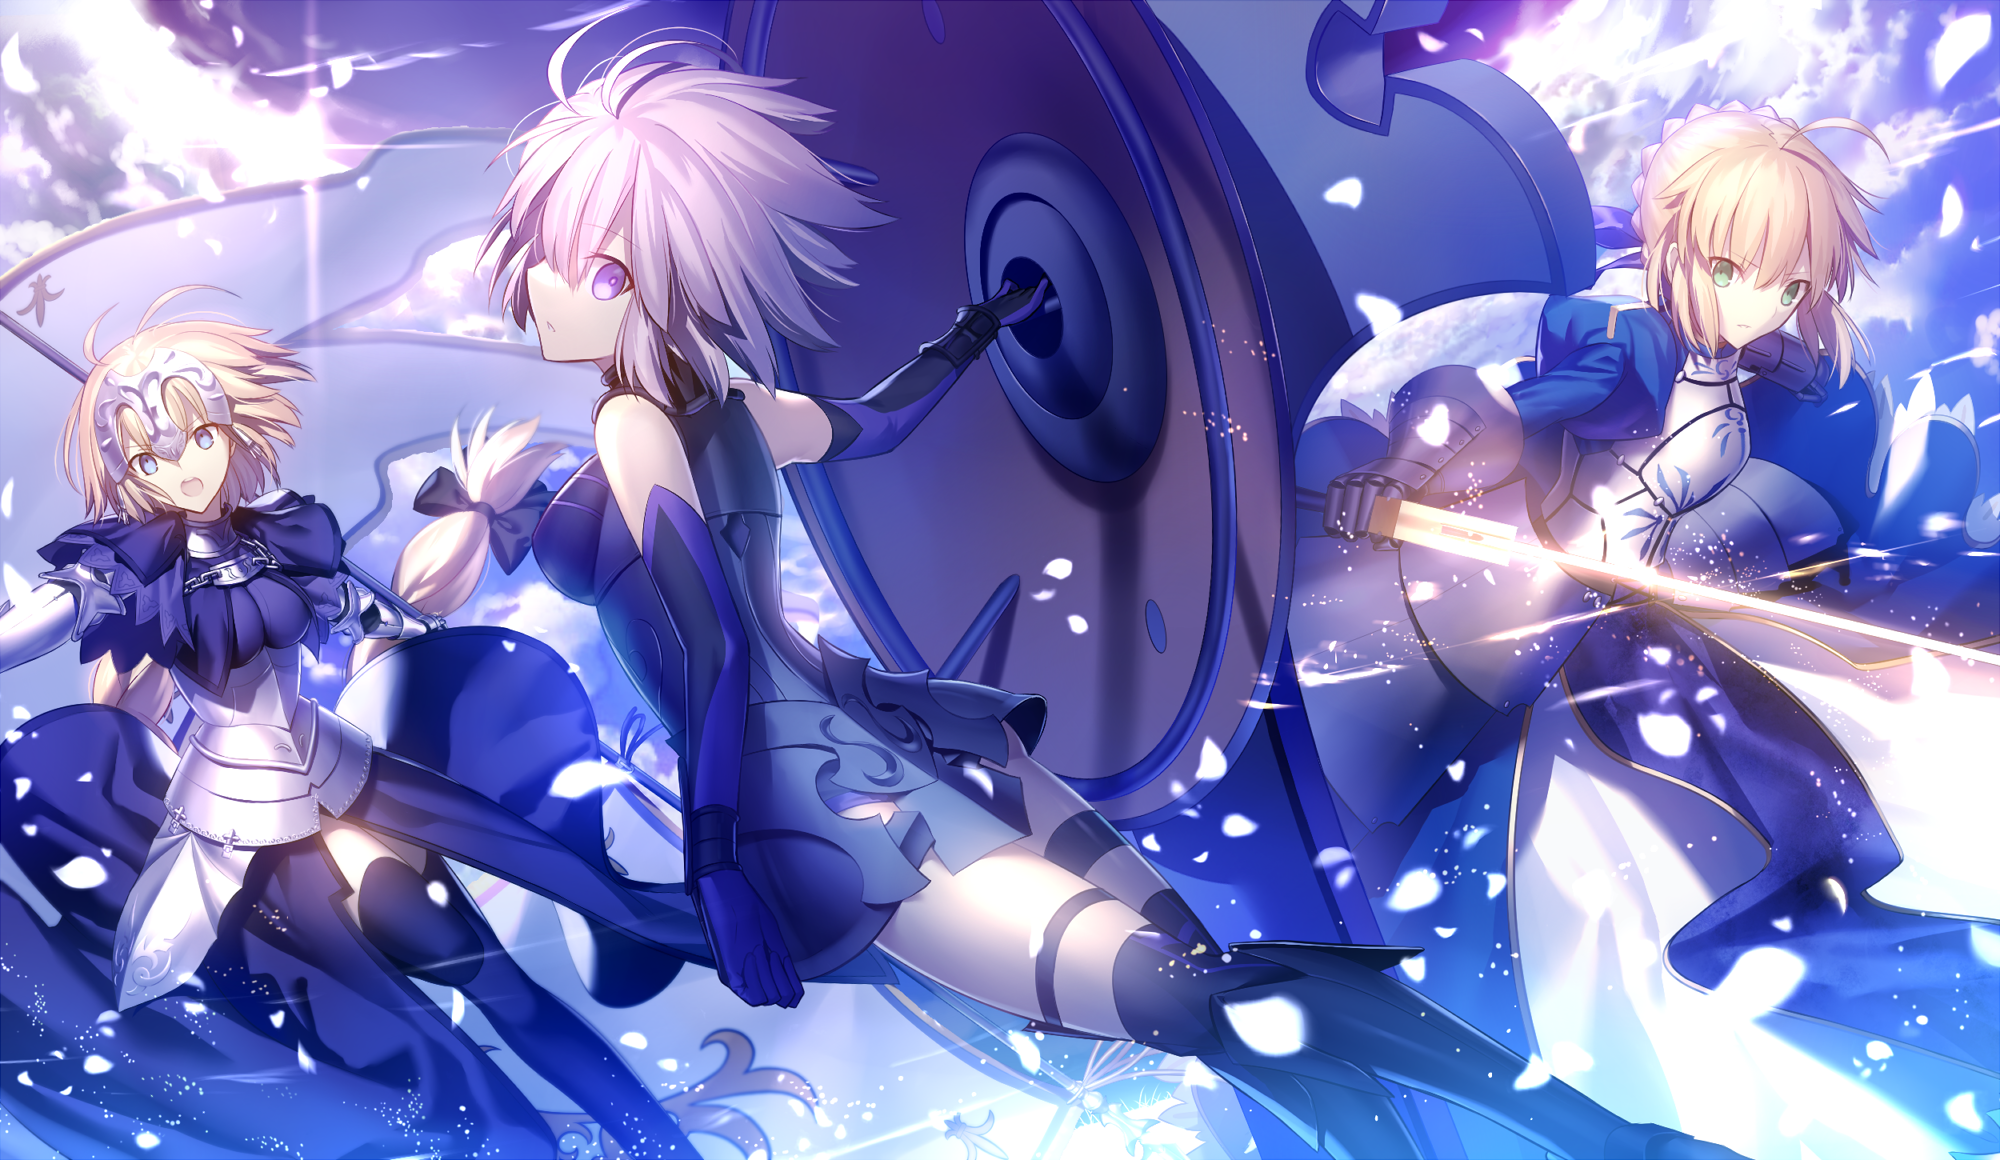 Fate Grand Order Hd Wallpaper Background Image 2000x1160 Id